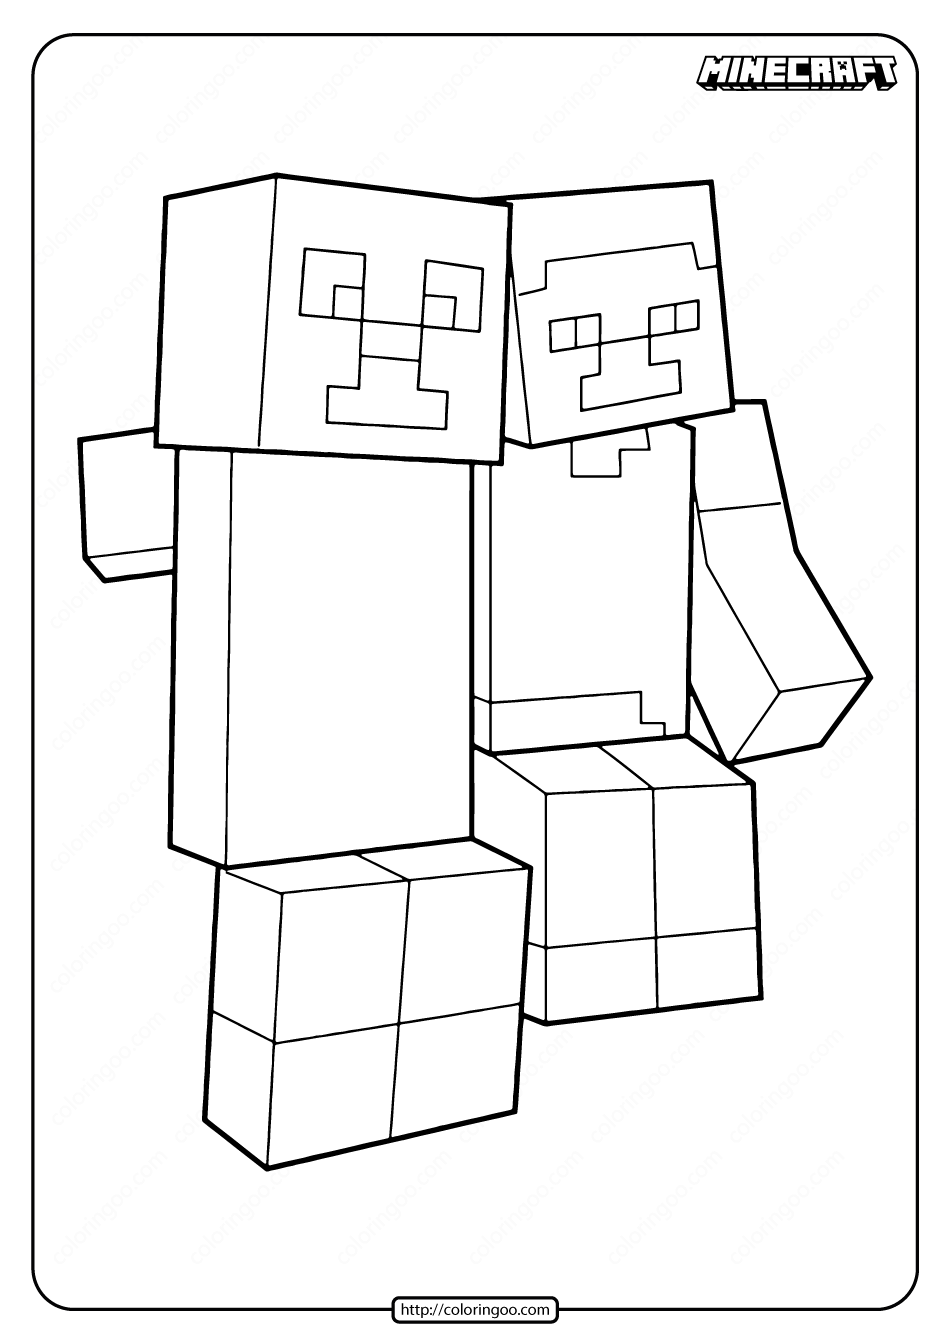 Minecraft Creeper and Steve Coloring Pages